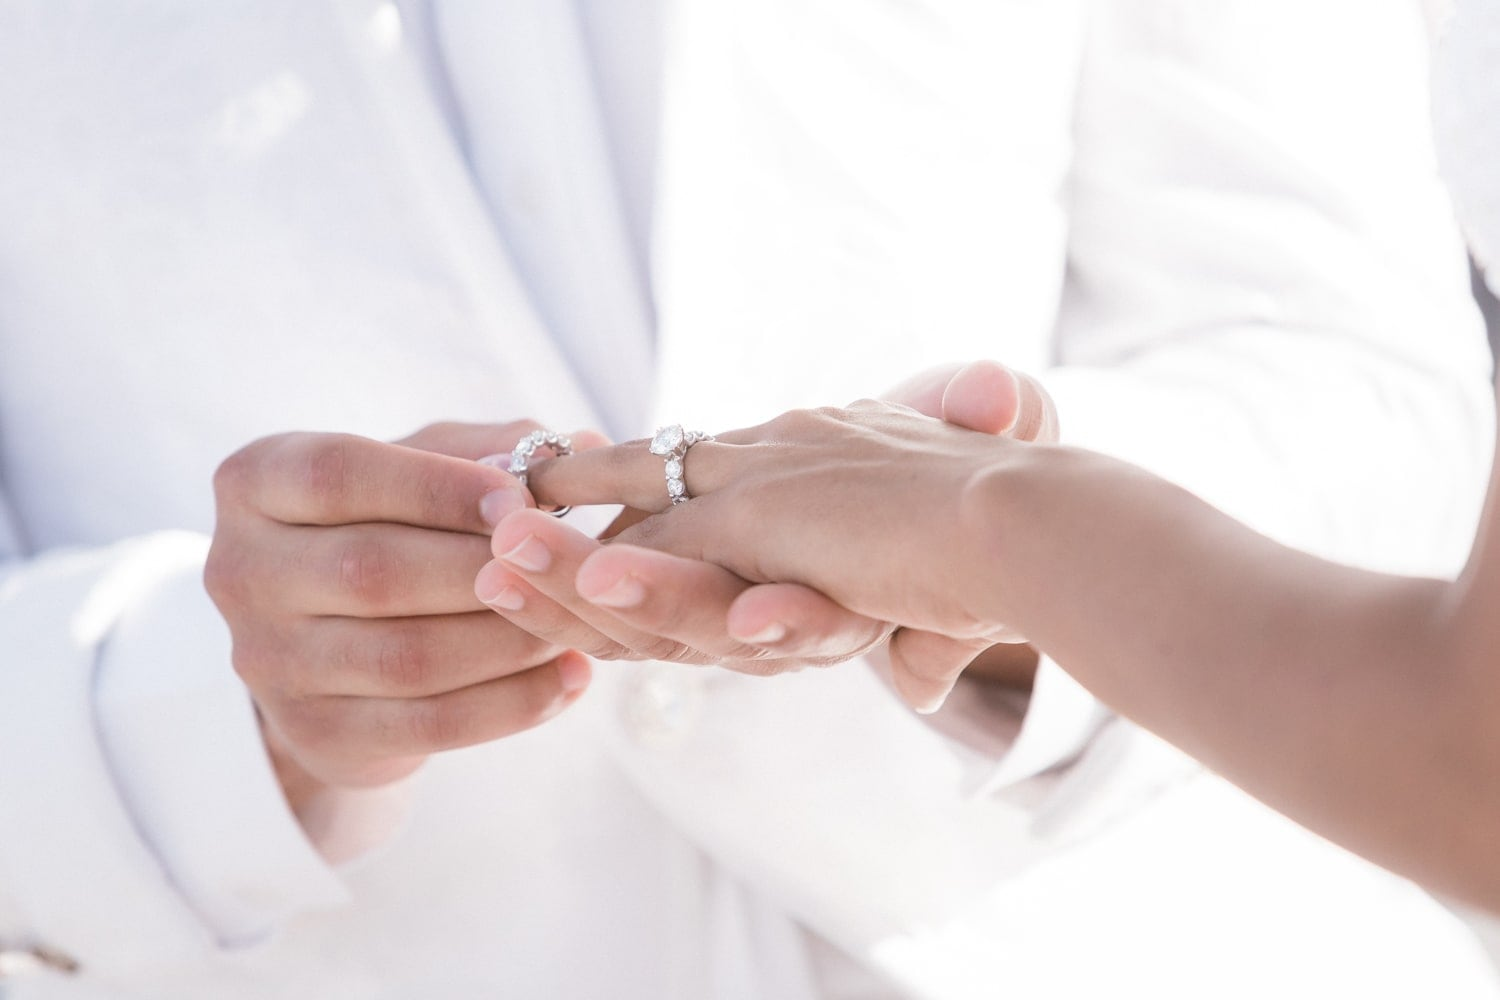 Bride and groom exchange rings during ceremony at Hard Rock Resort, Dominican Republic.